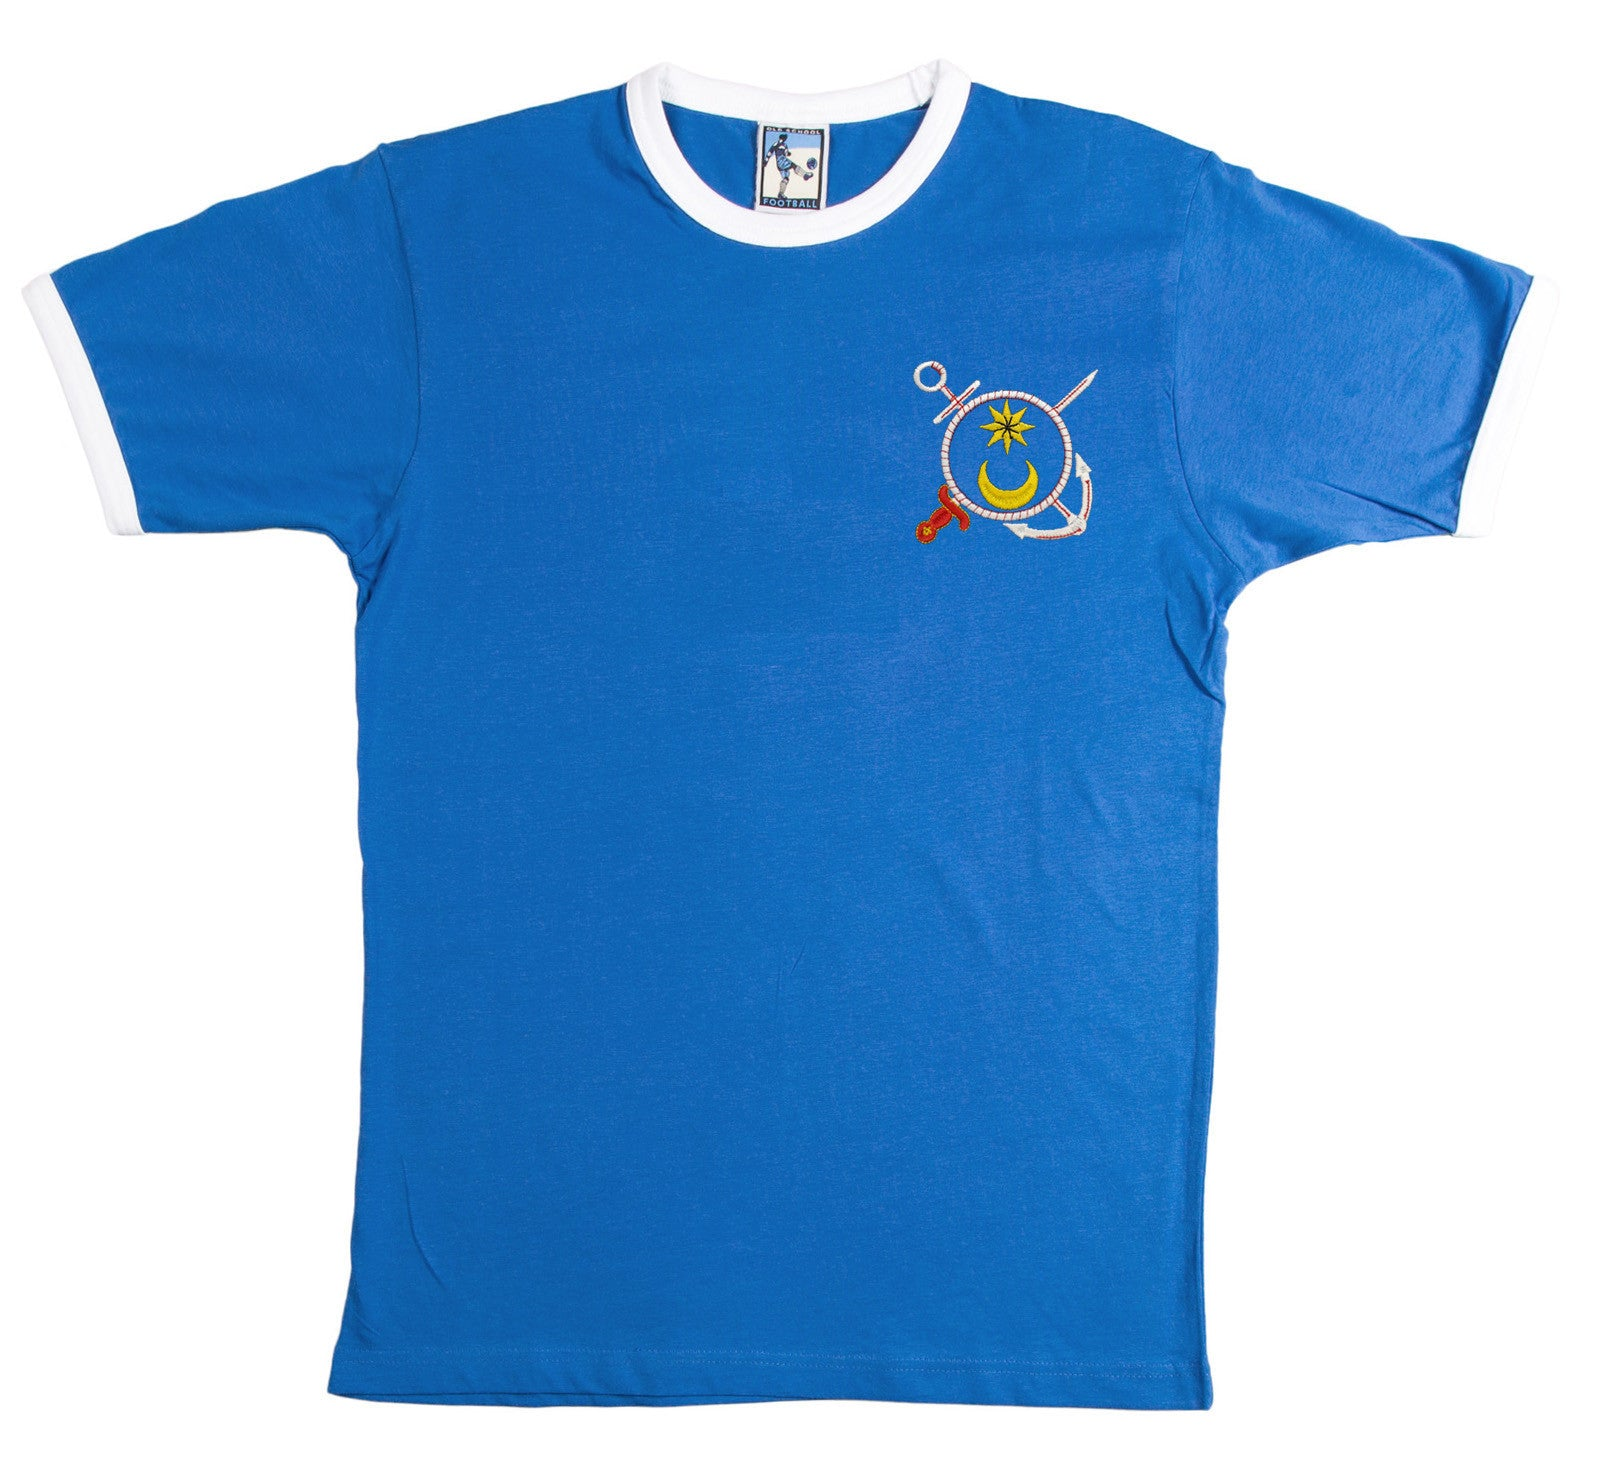 Portsmouth 1970s T-Shirt - Old School Football